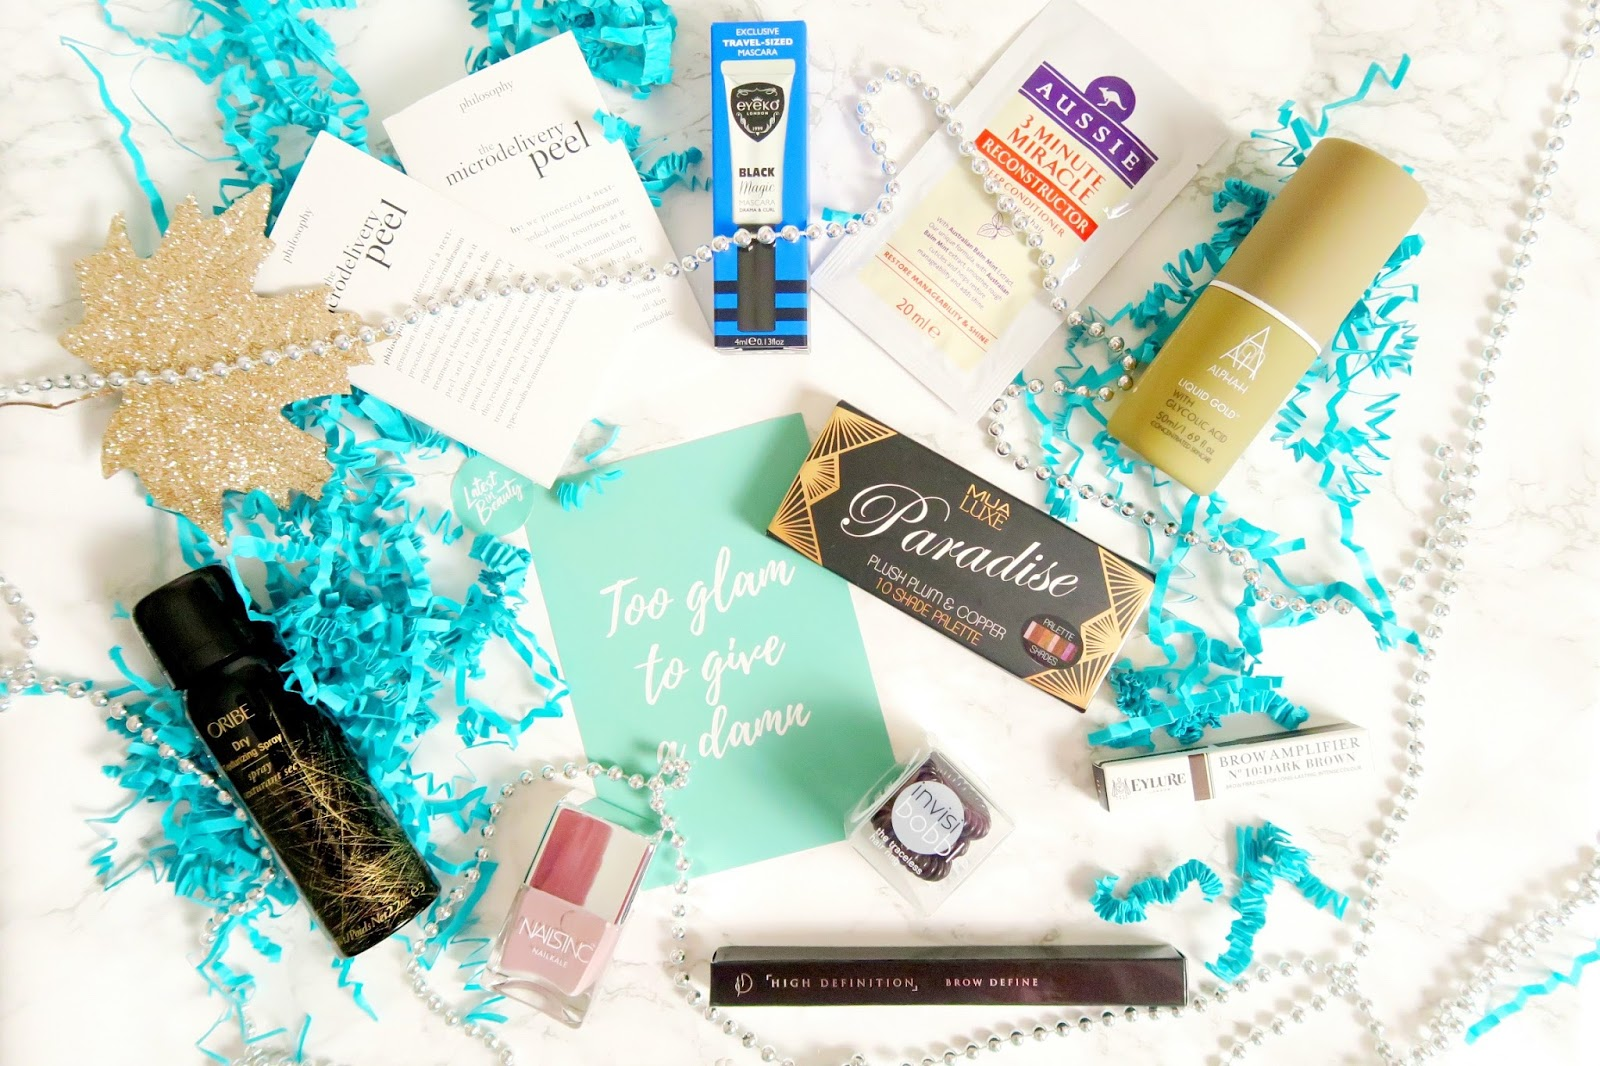 an image of Latest In Beauty Box